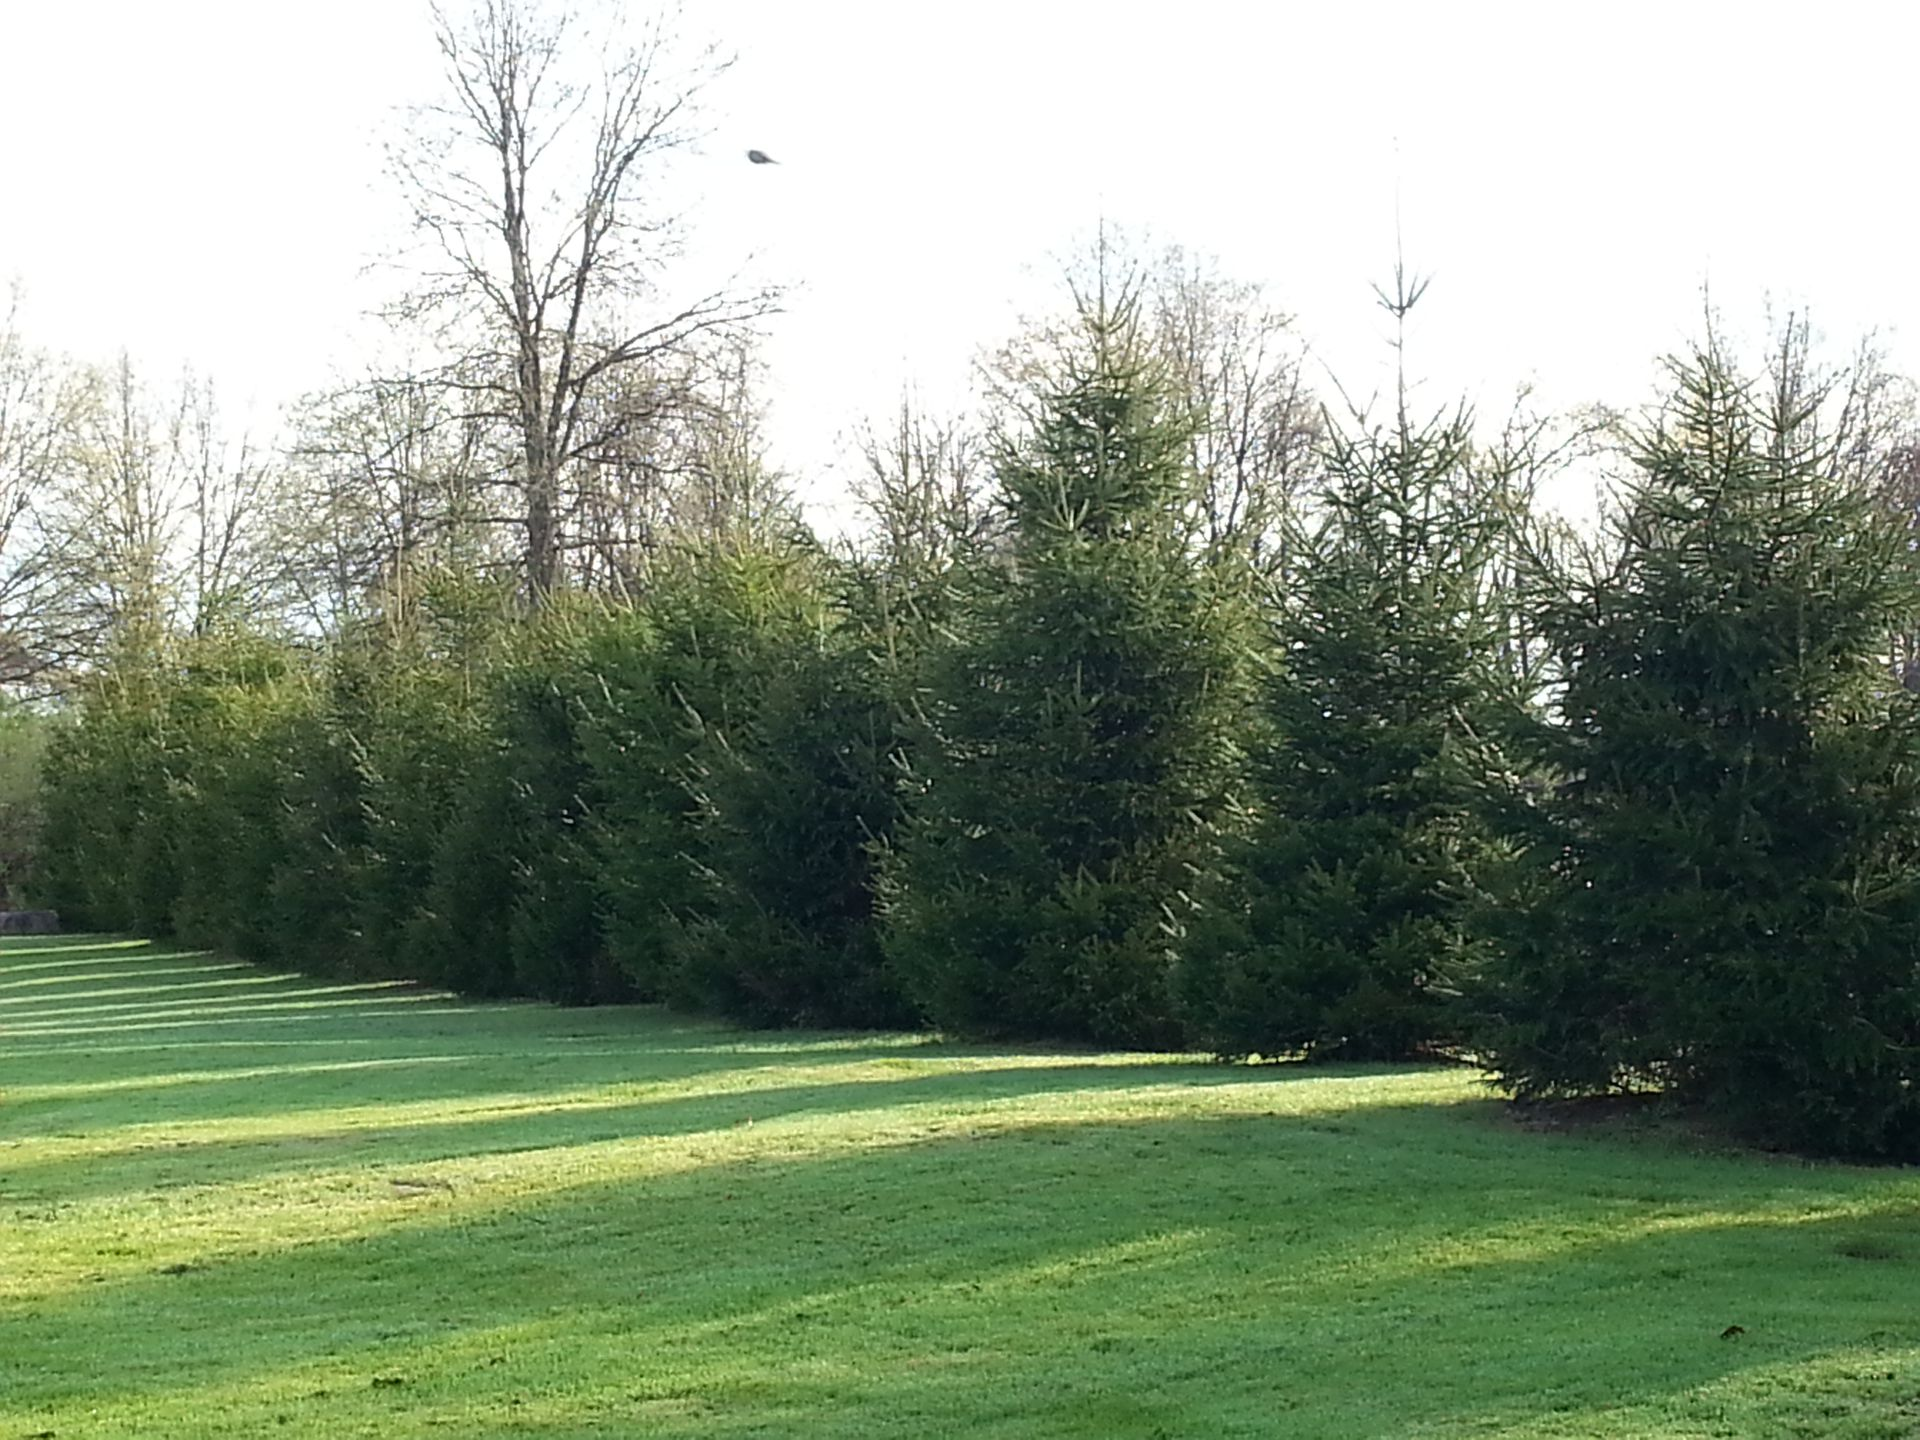 Spruce trees 4 years later